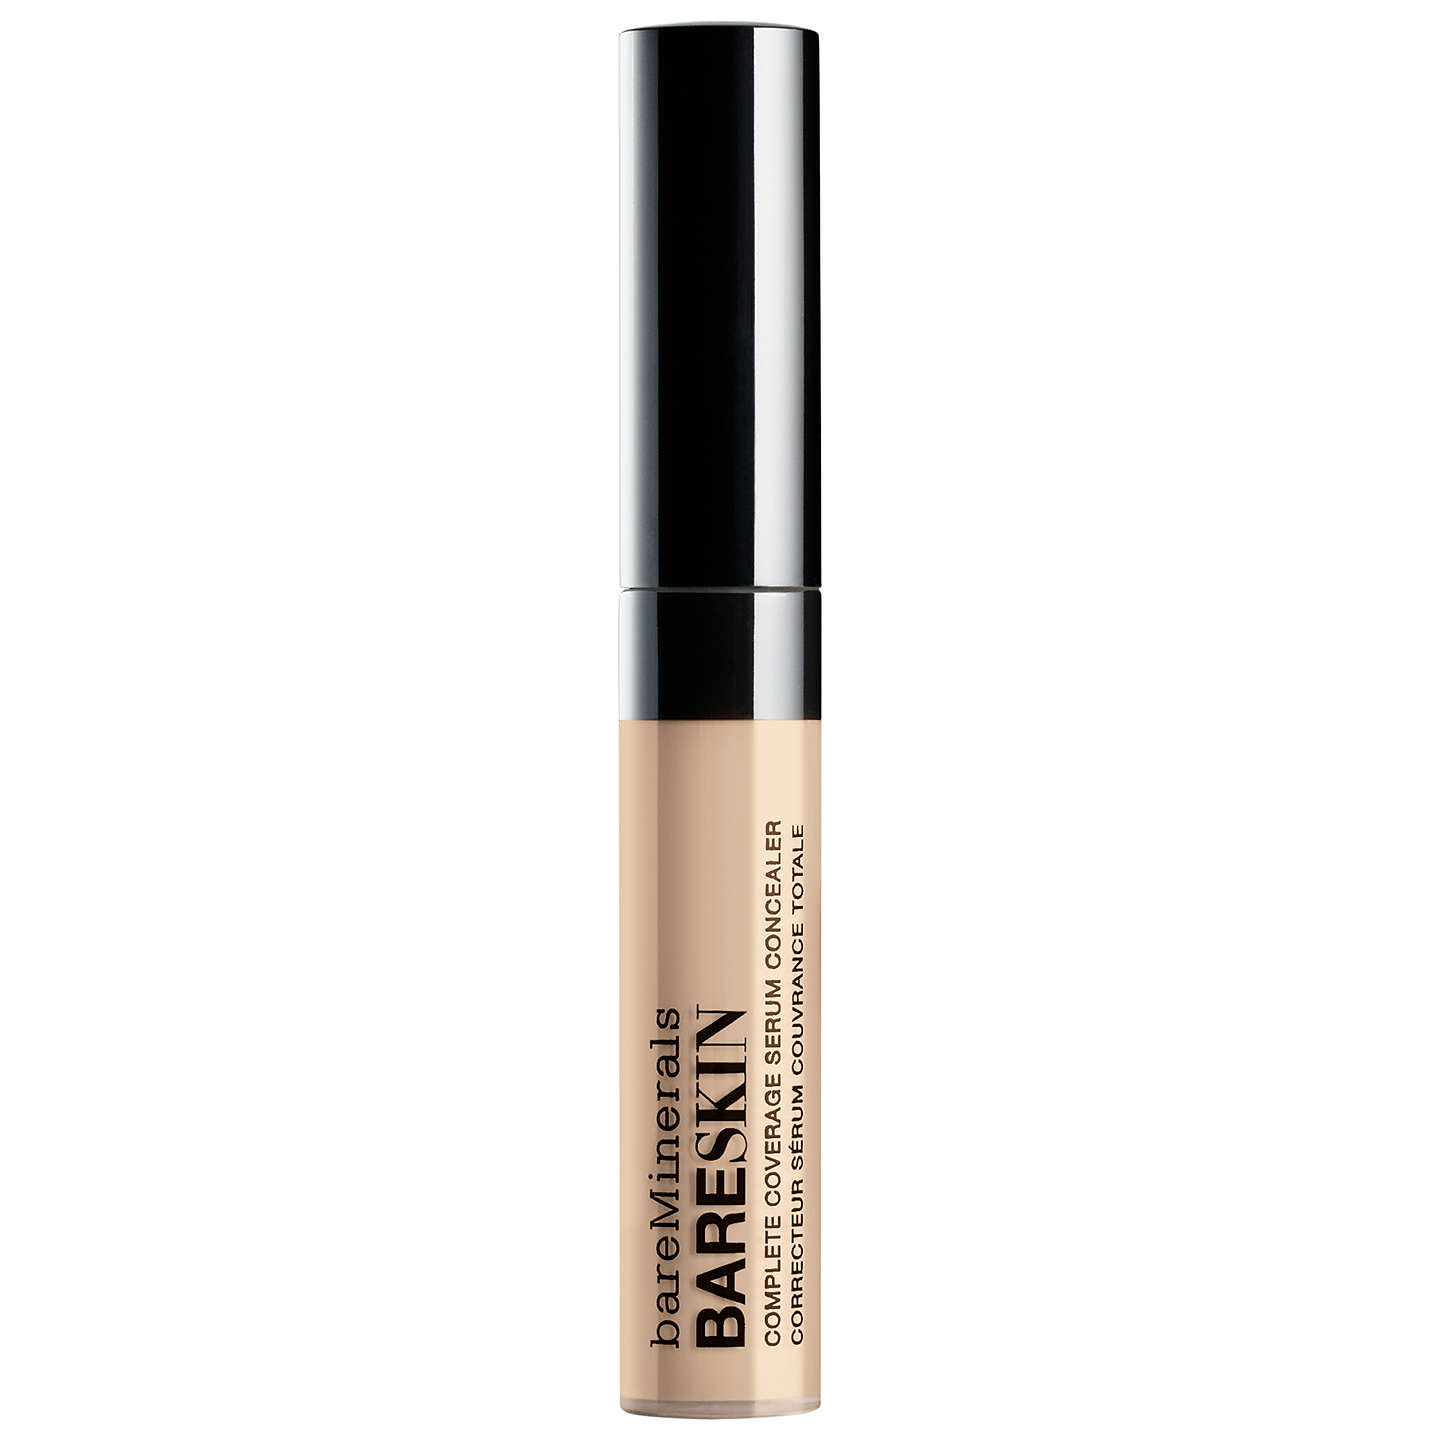 BuybareMinerals bareSkin® Complete Coverage Serum Concealer, Fair Online at johnlewis.com